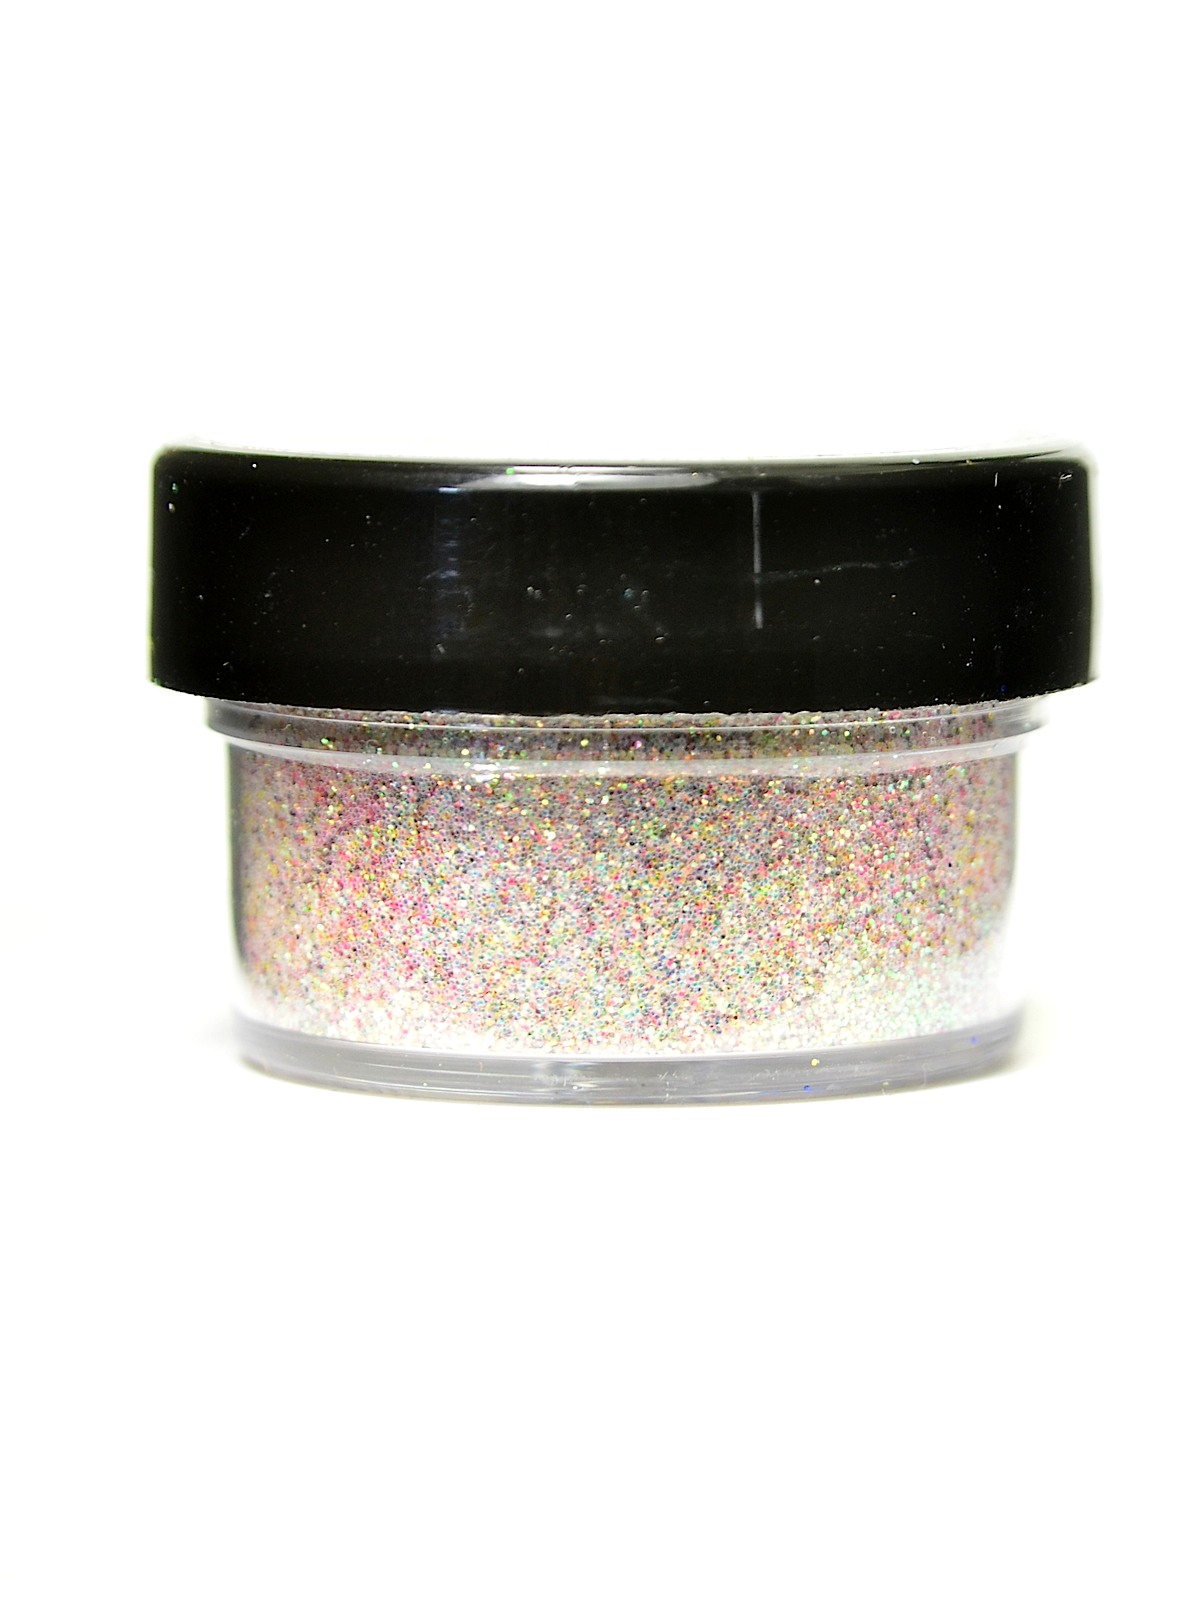 Ultrafine Transparent Glitter Fossil 1 2 Oz. Jar